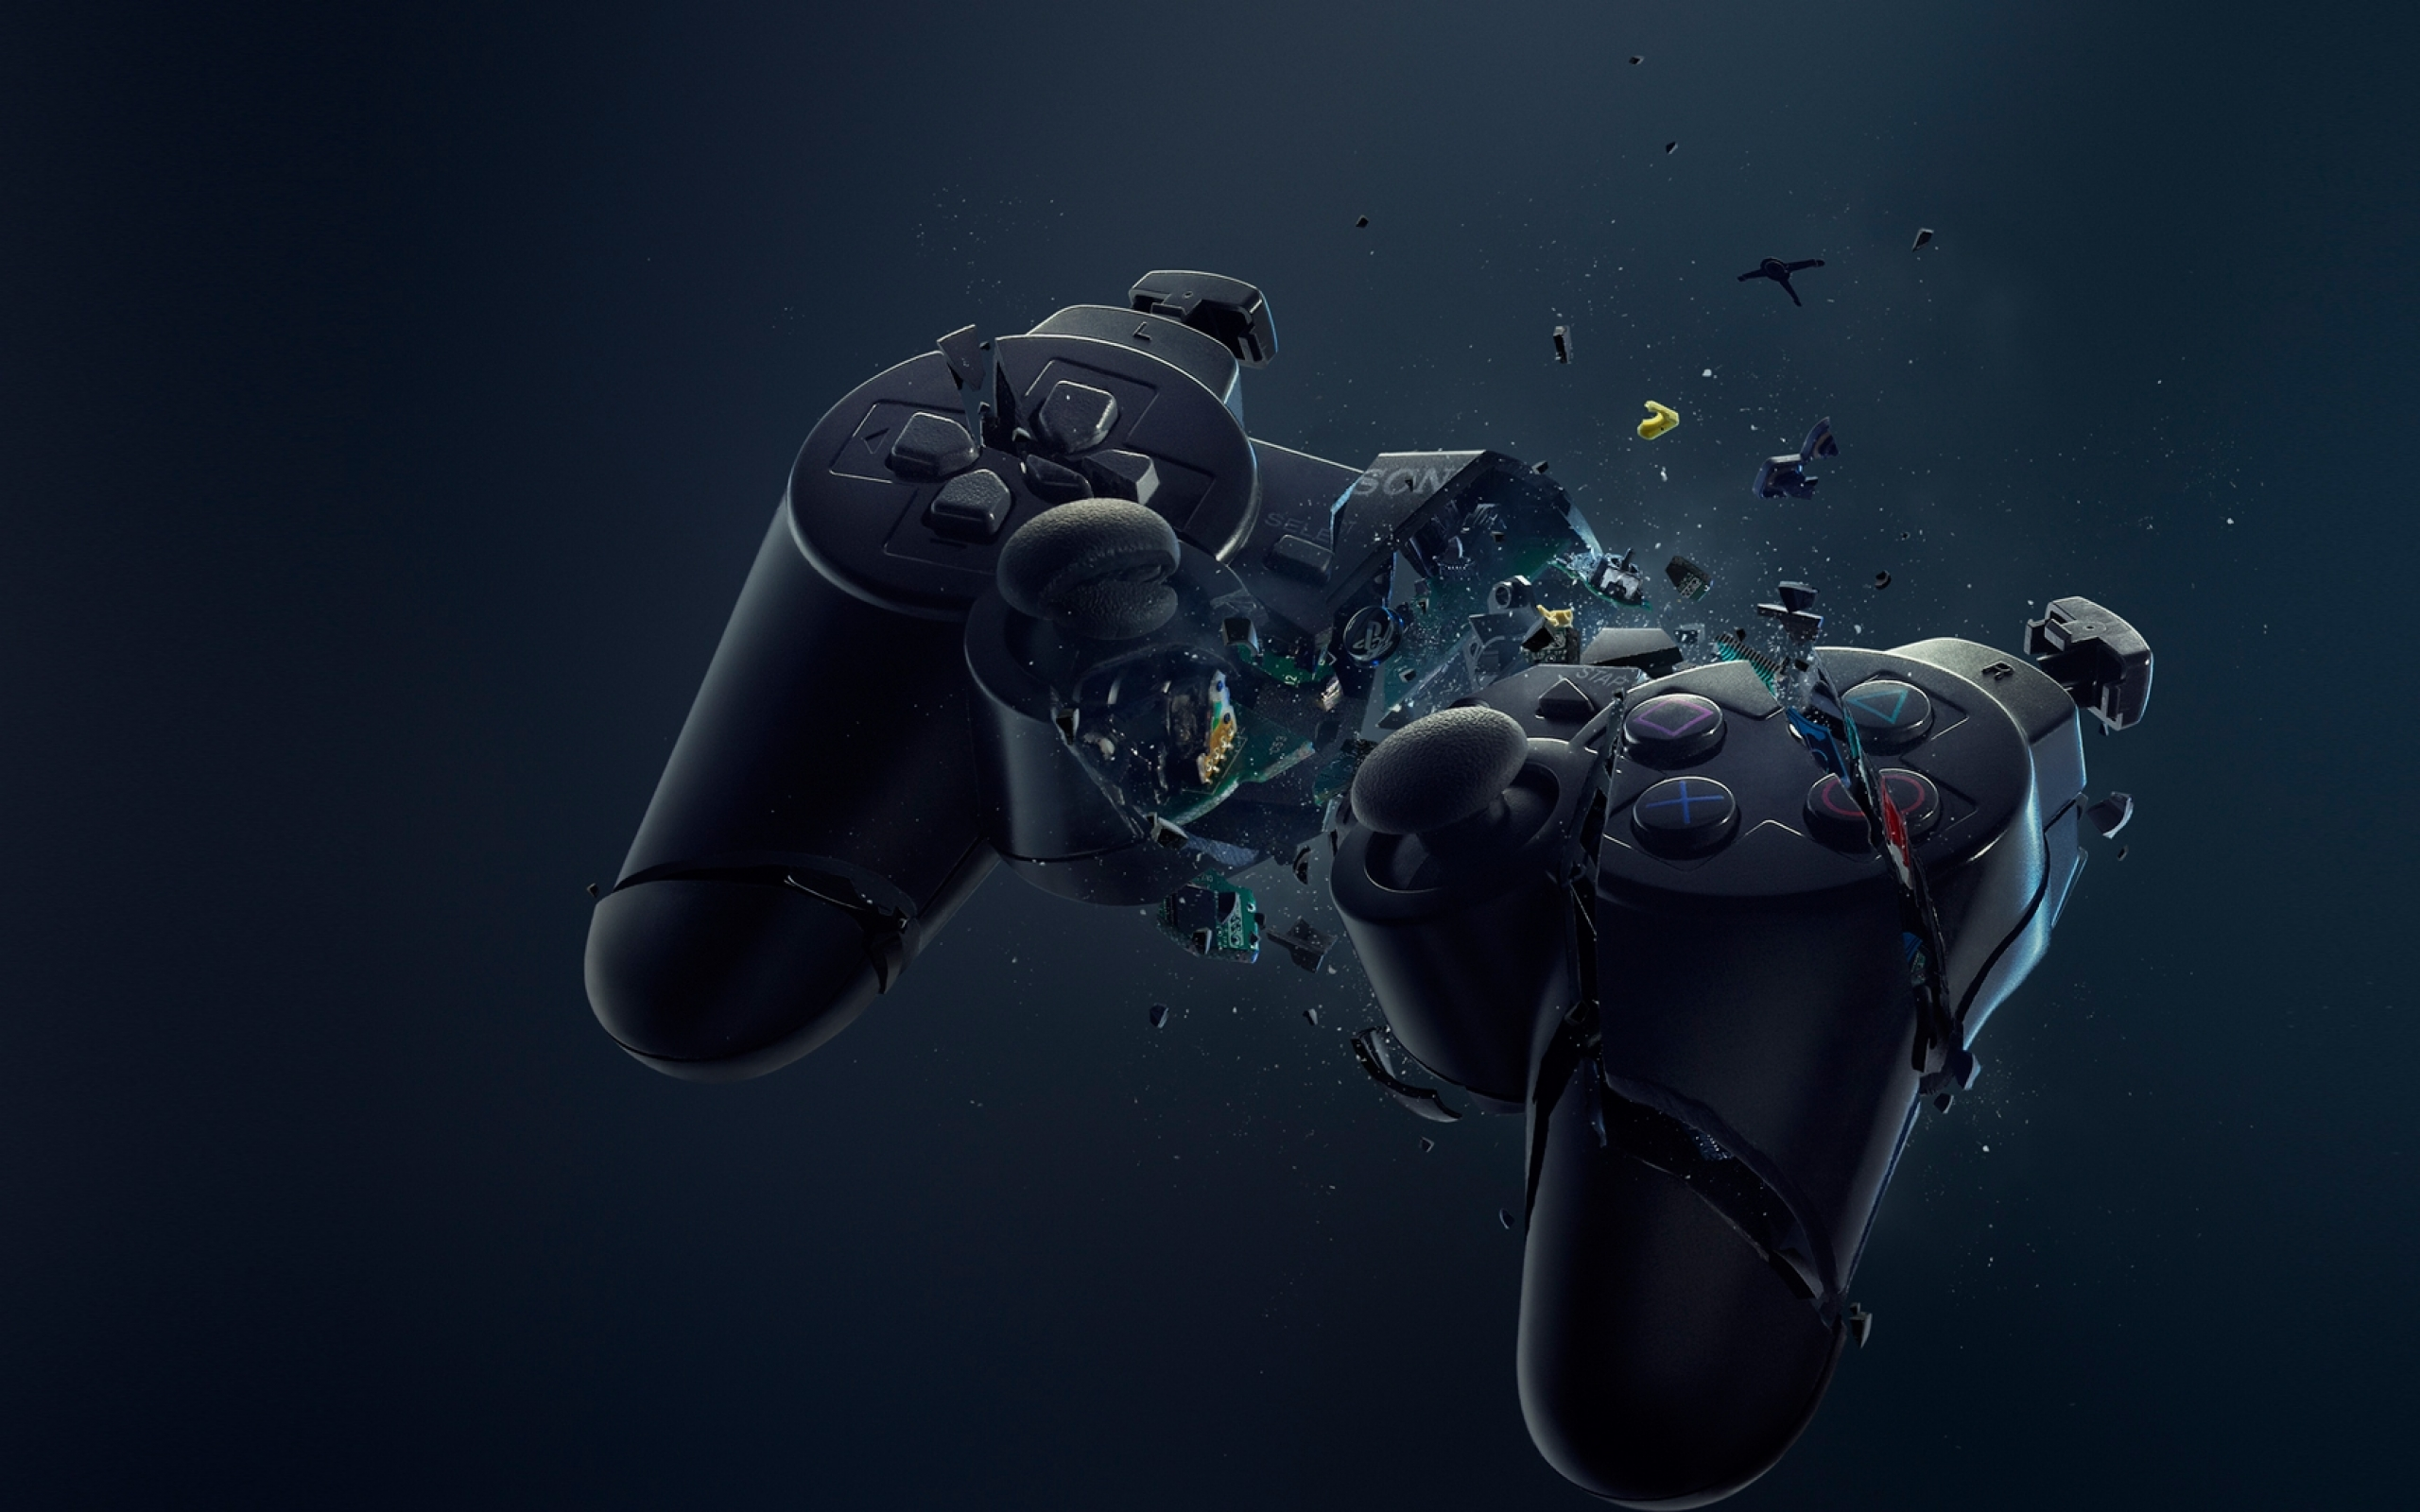 video_games_black_broken_sony_console_crash_playstation_destroyed_crush_dualshock_gamepad_controller_Wallpaper_2560x1600_www.wall321.com_